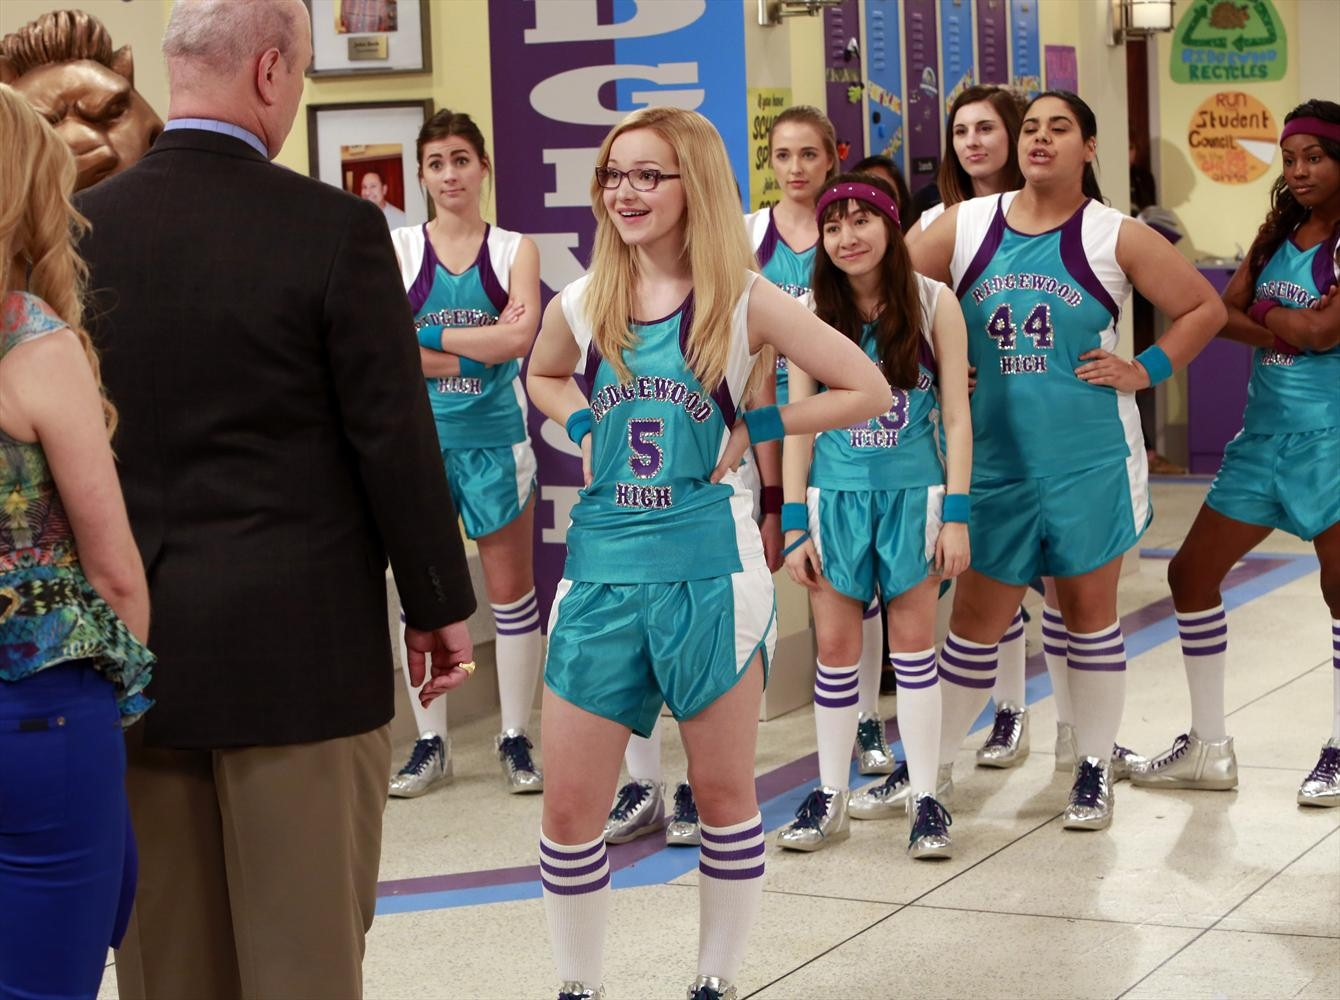 Disney channel coloring pages liv and maddie - Full Resolution